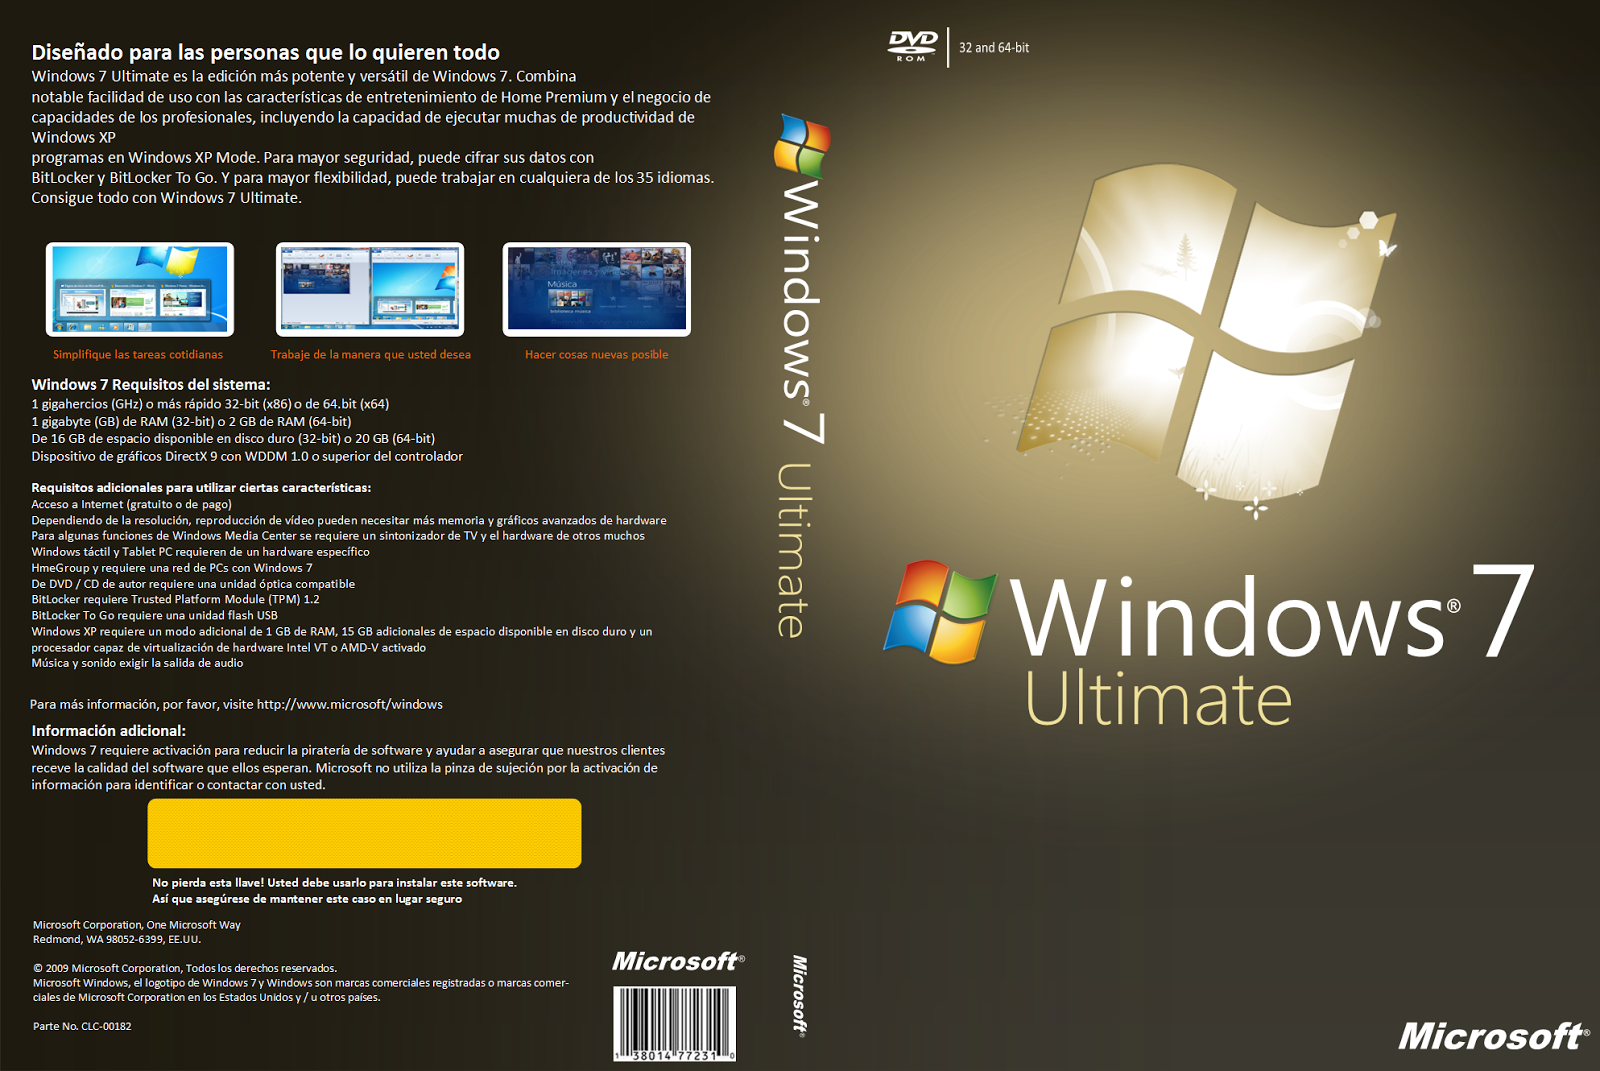 torrent for windows 7 ultimate 32 bit